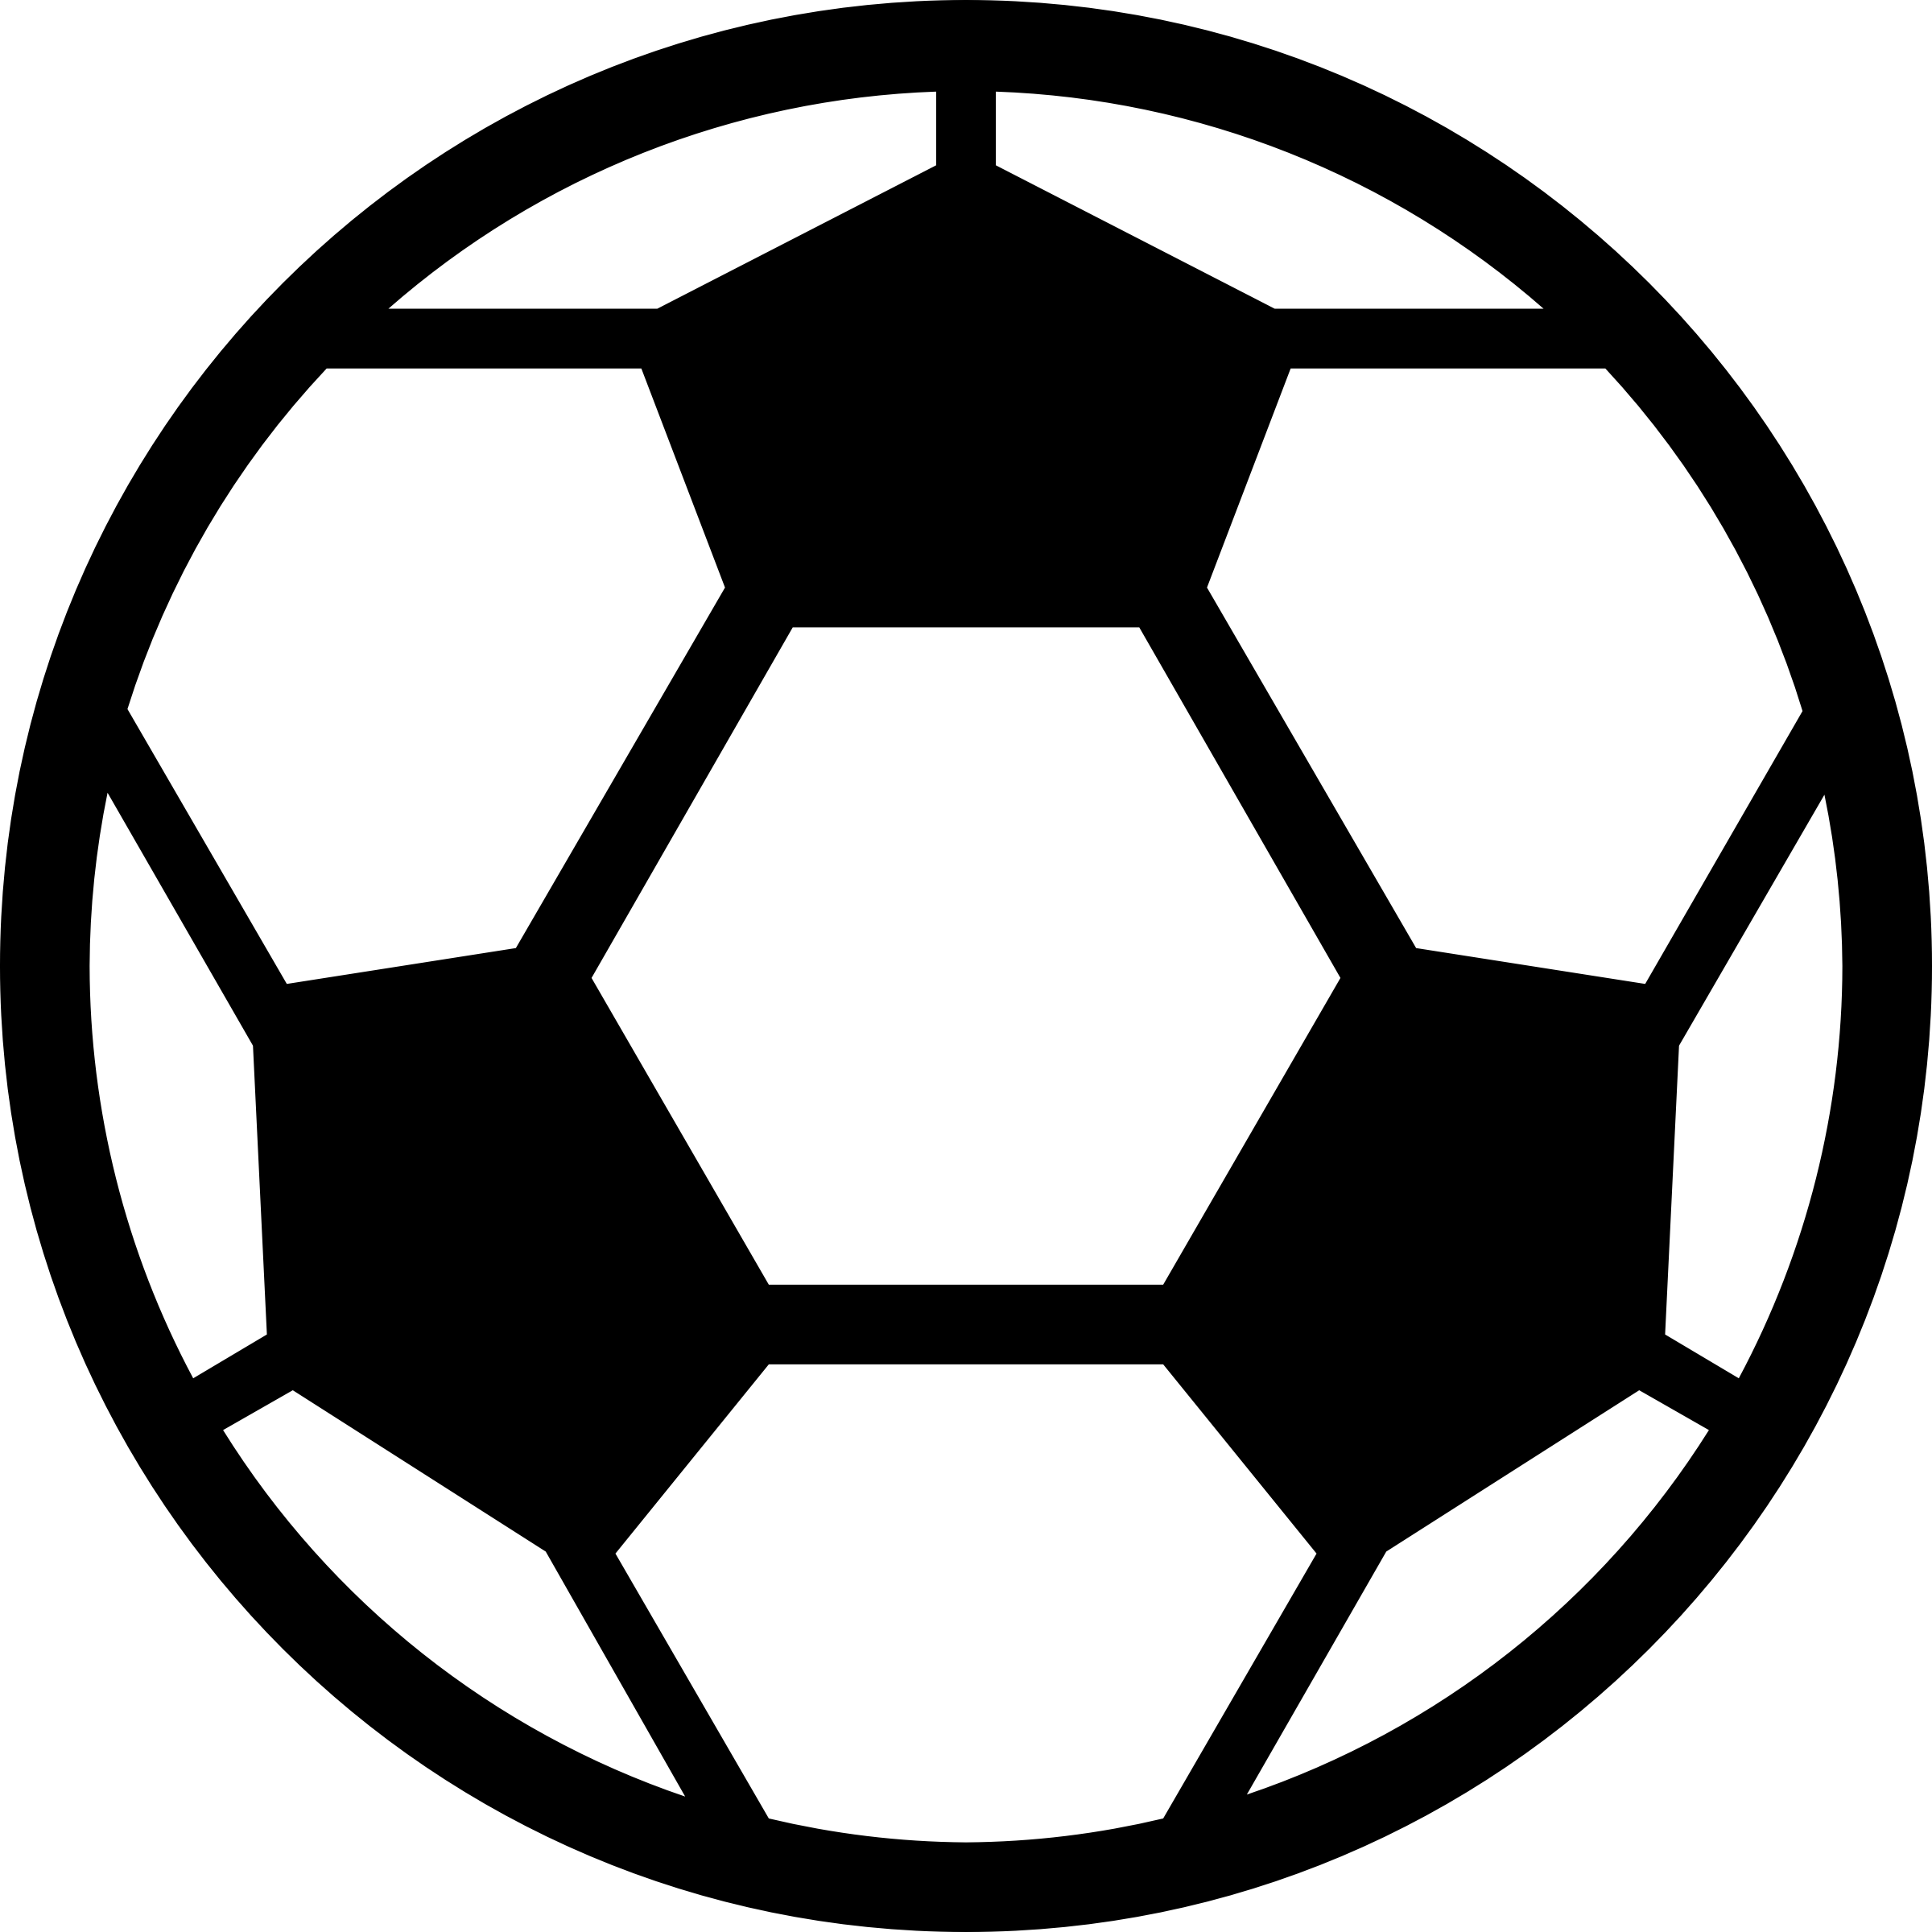 Soccer Ball coloring page Free Printable